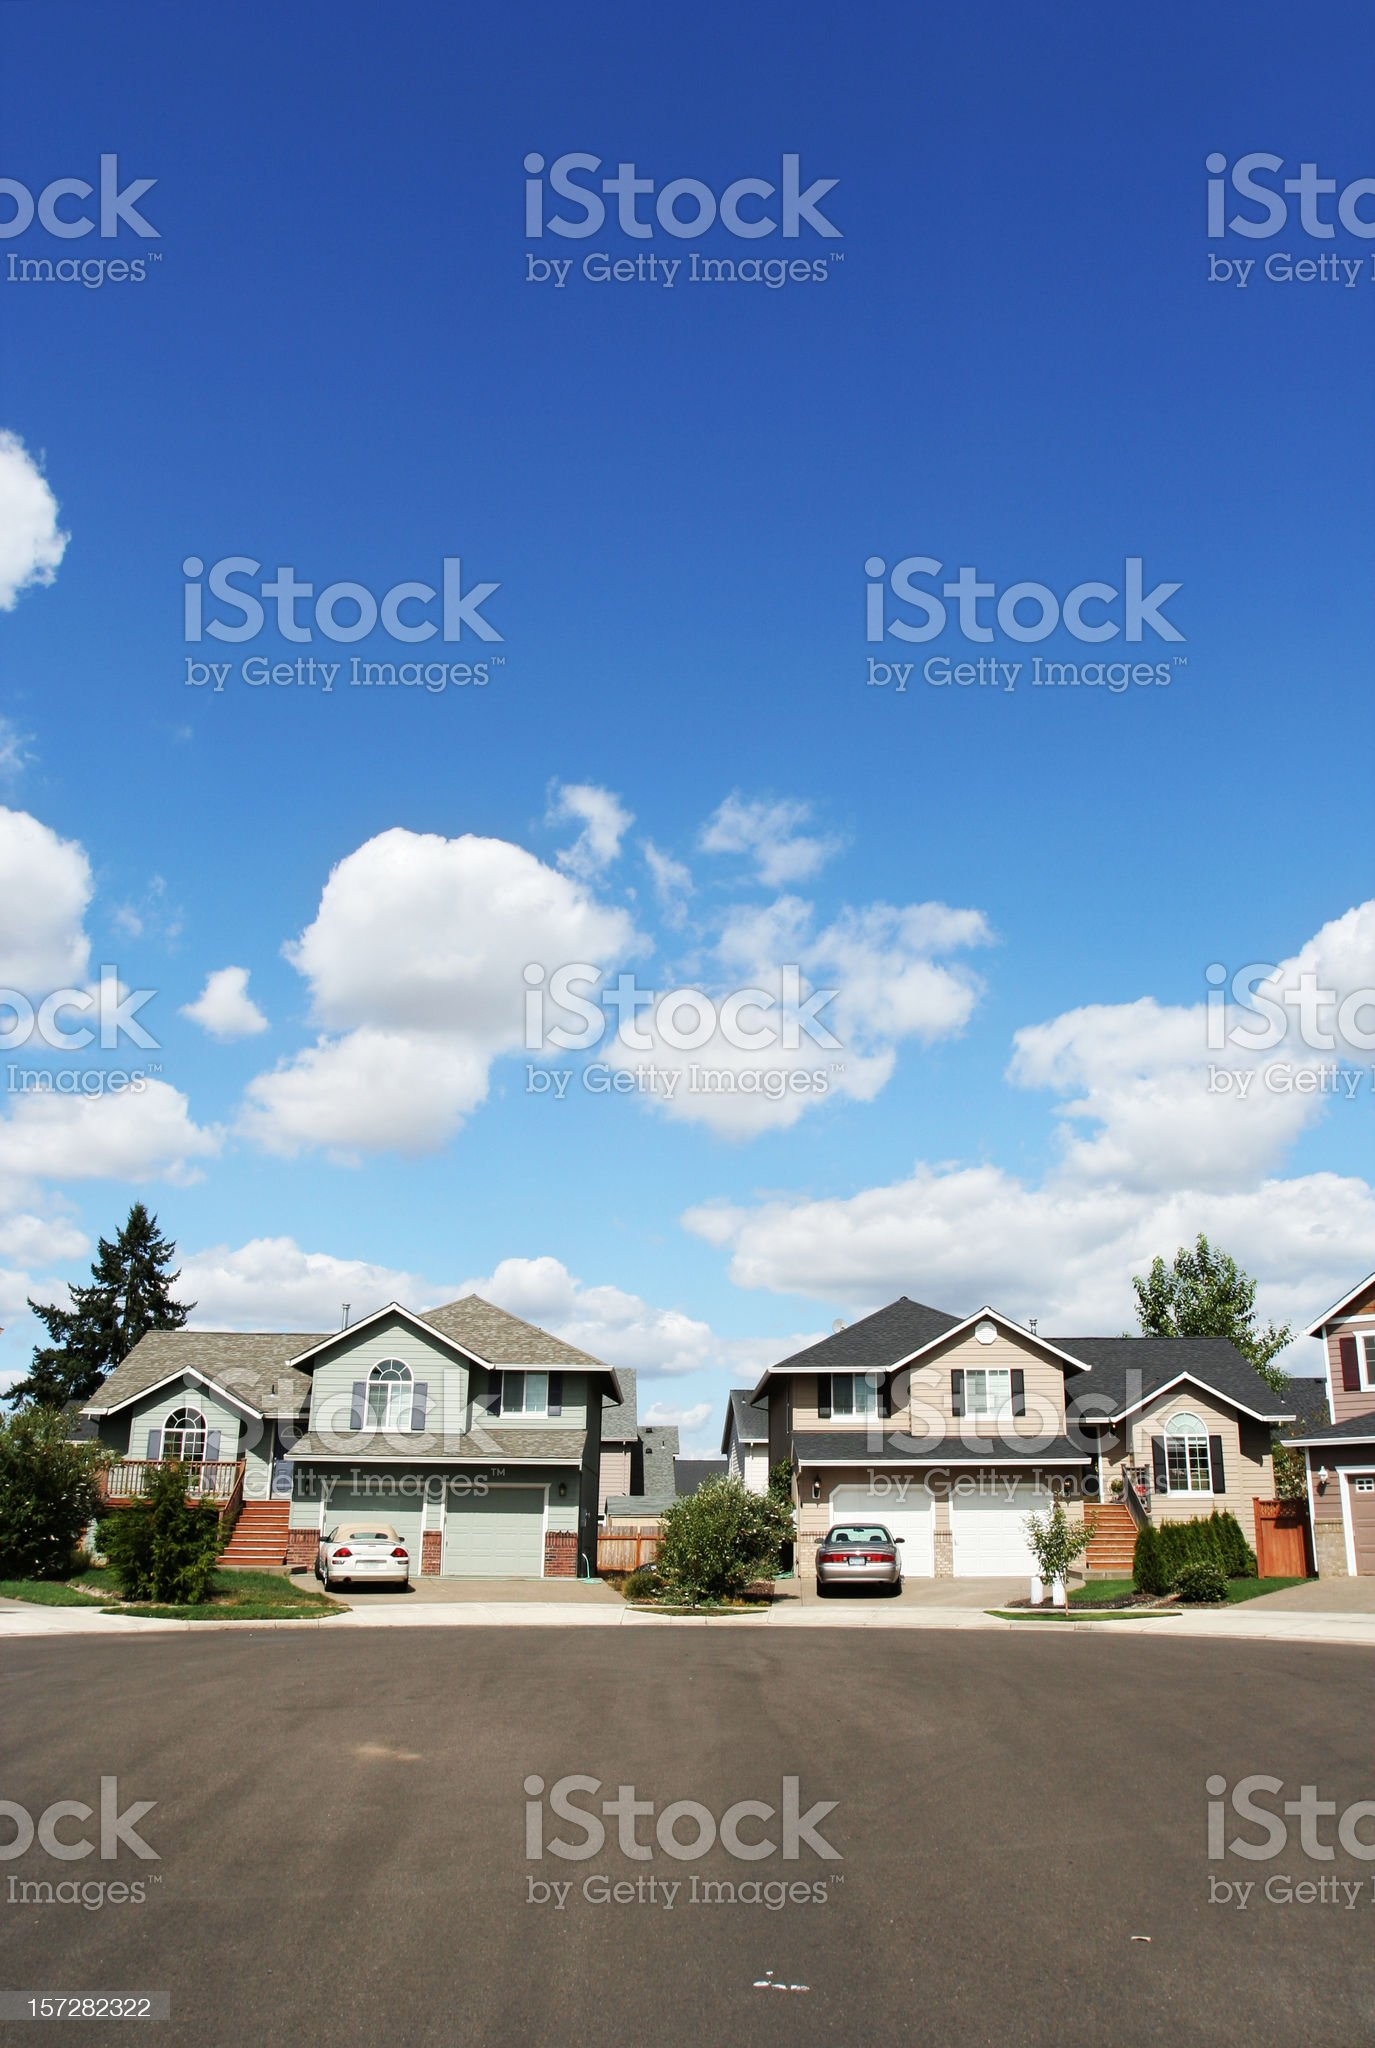 New Homes with Nice Sky and Clouds royalty-free stock photo